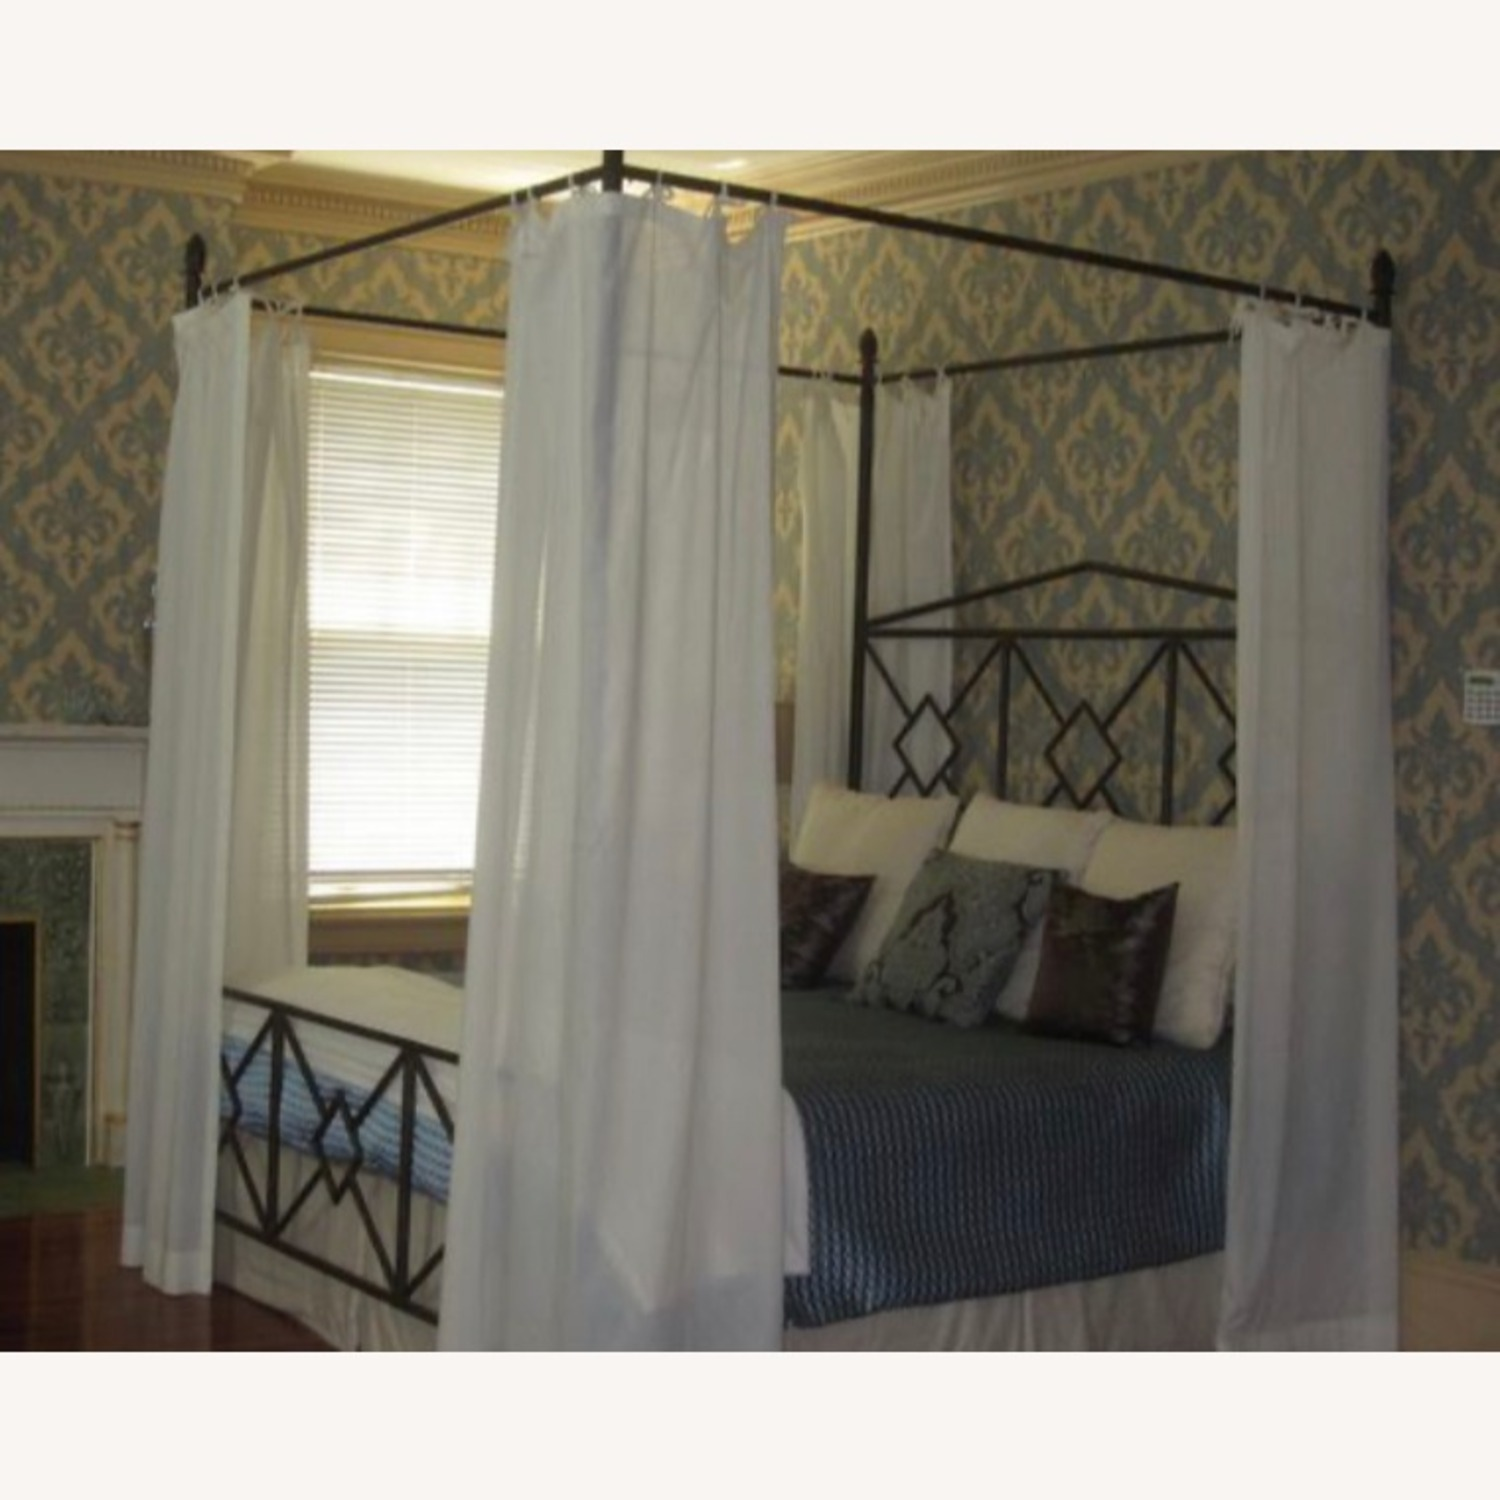 King Sized Canopy Iron Bed Frame - image-1